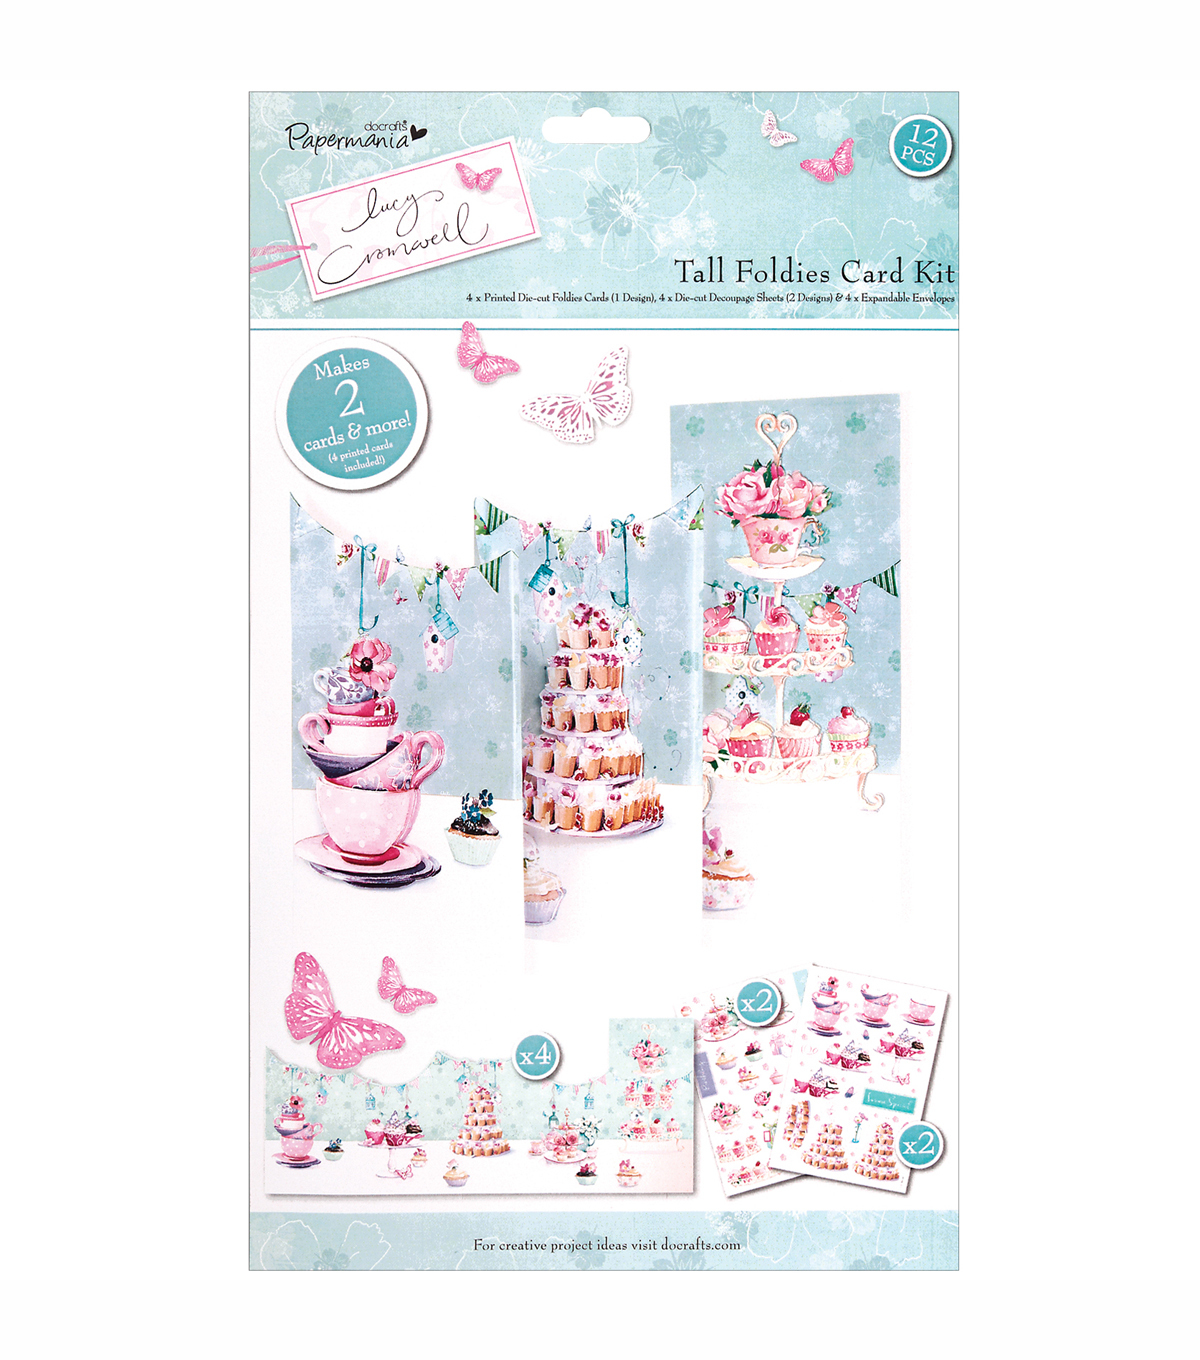 Docrafts Papermania Lucy Cromwell Tall Foldies Card Kit